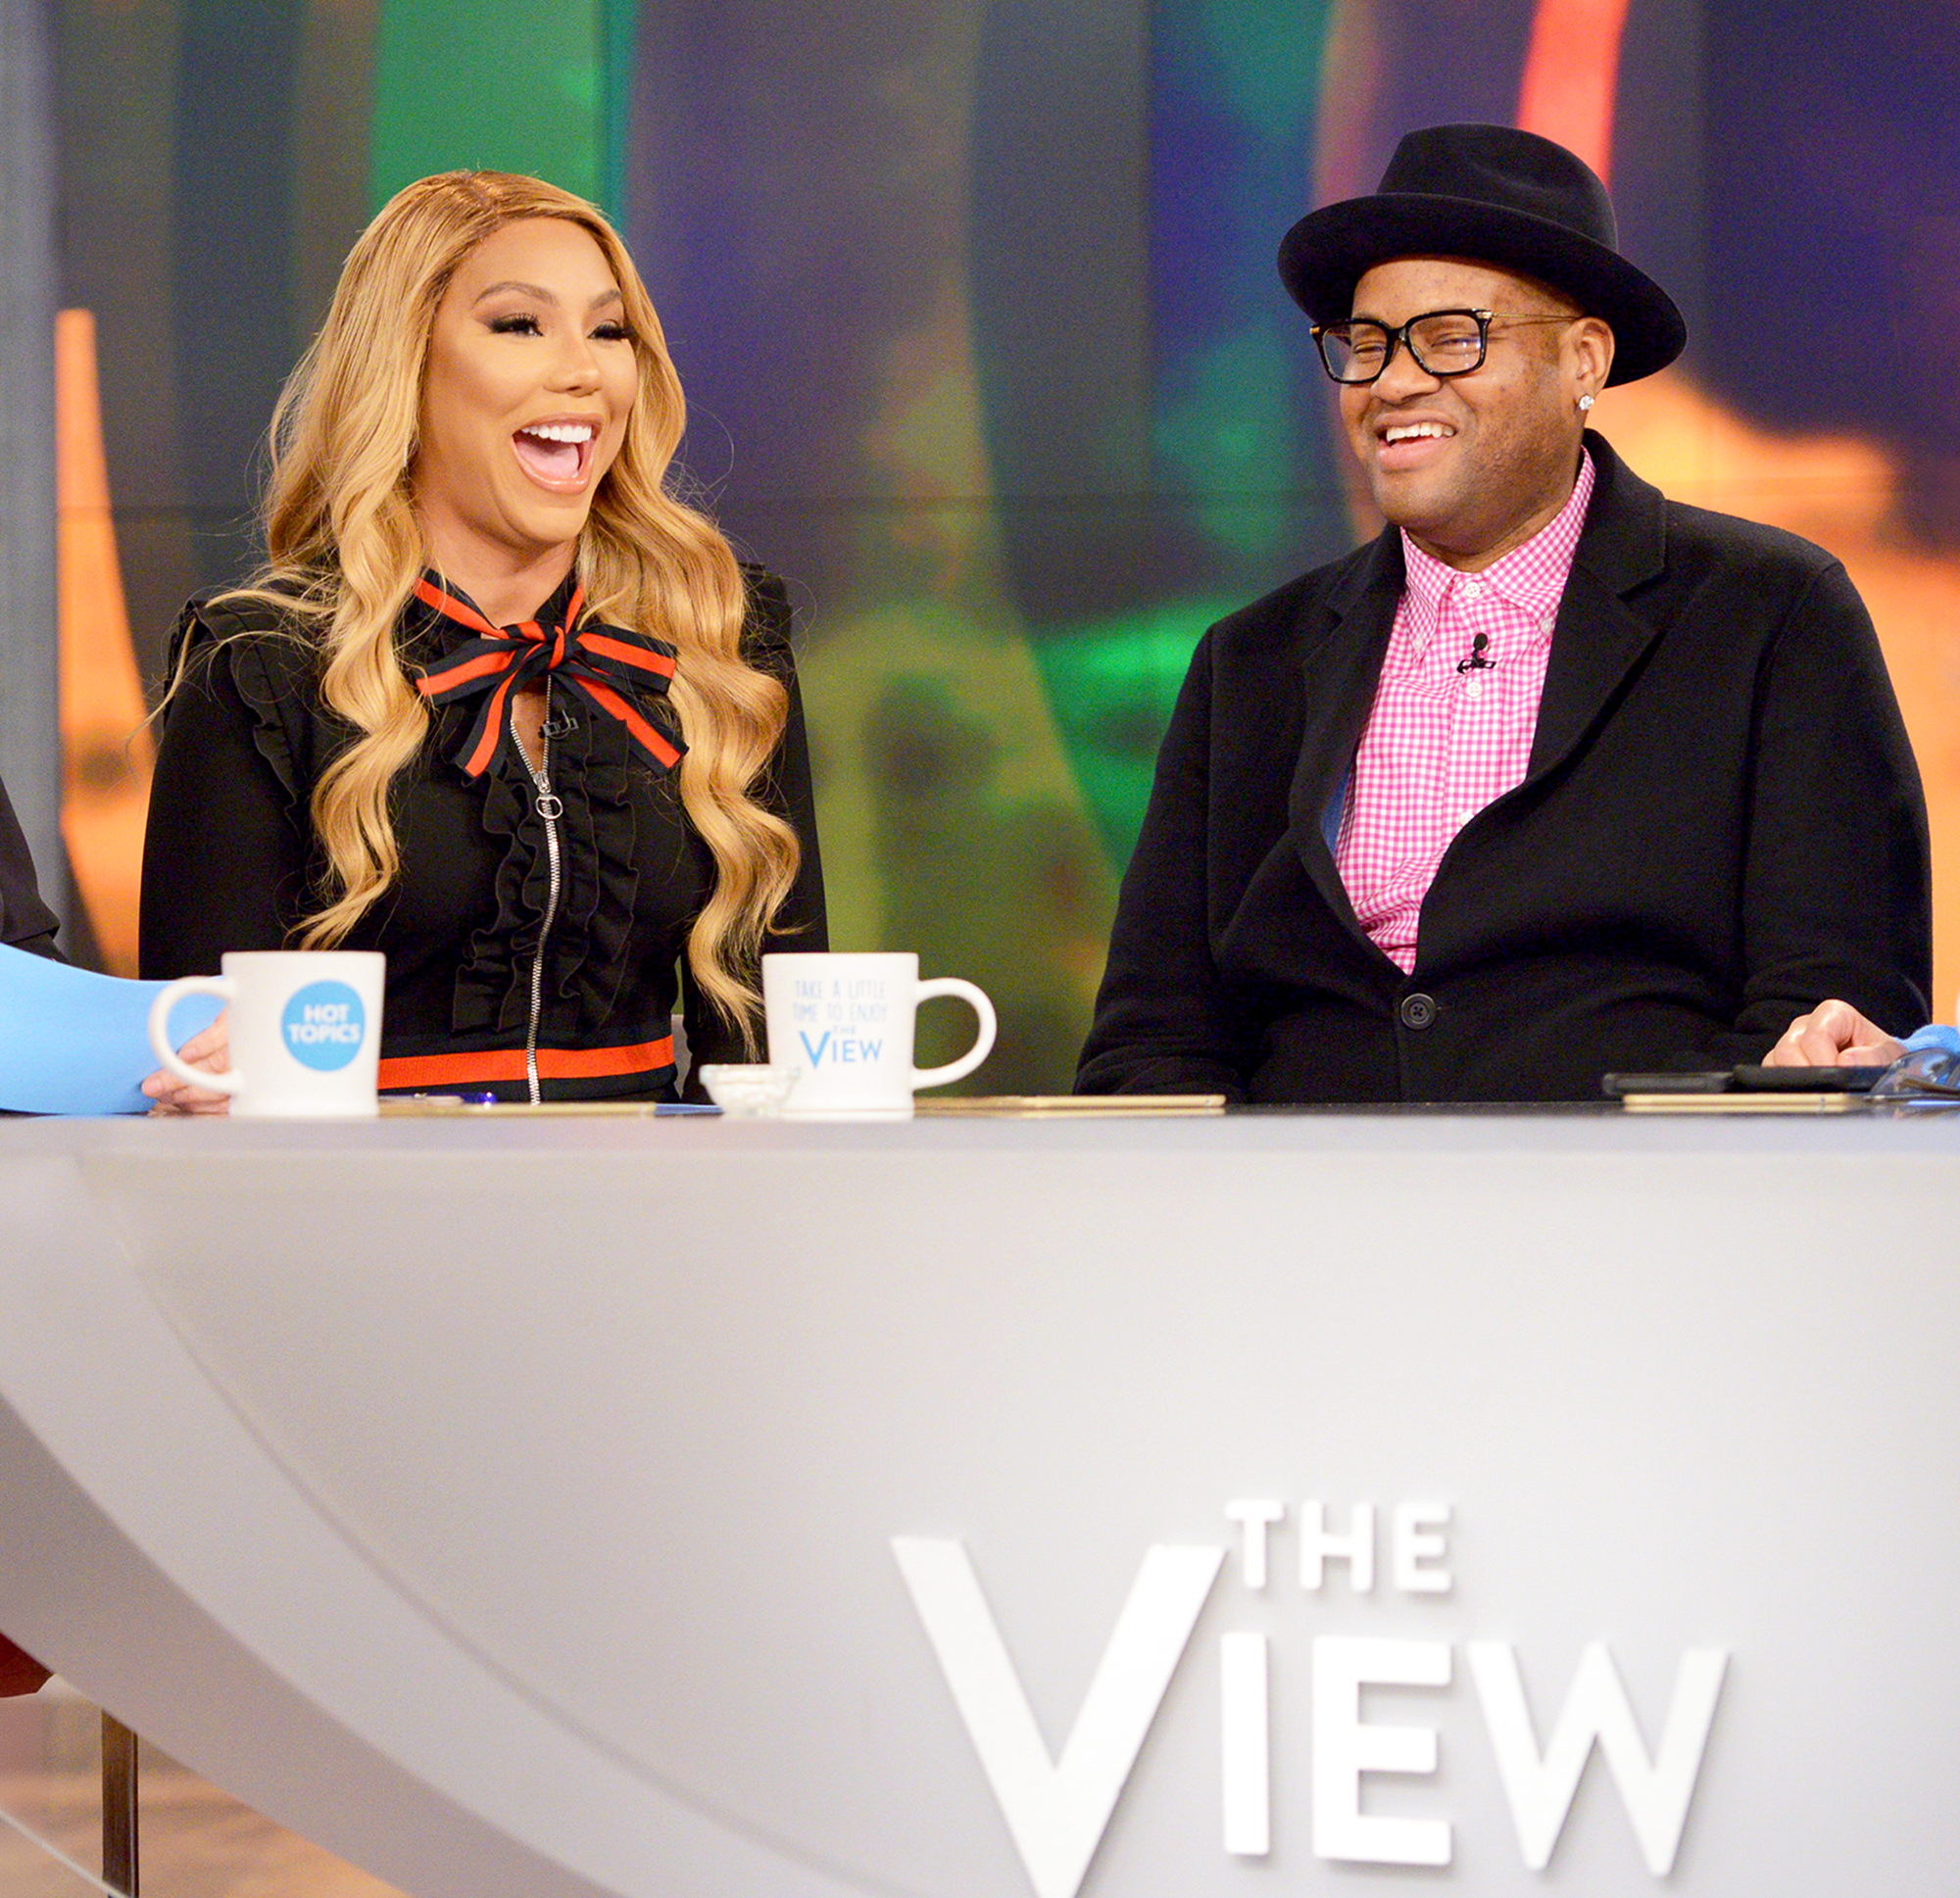 Tamar Braxton Addresses Marriage Rumors on 'The View'